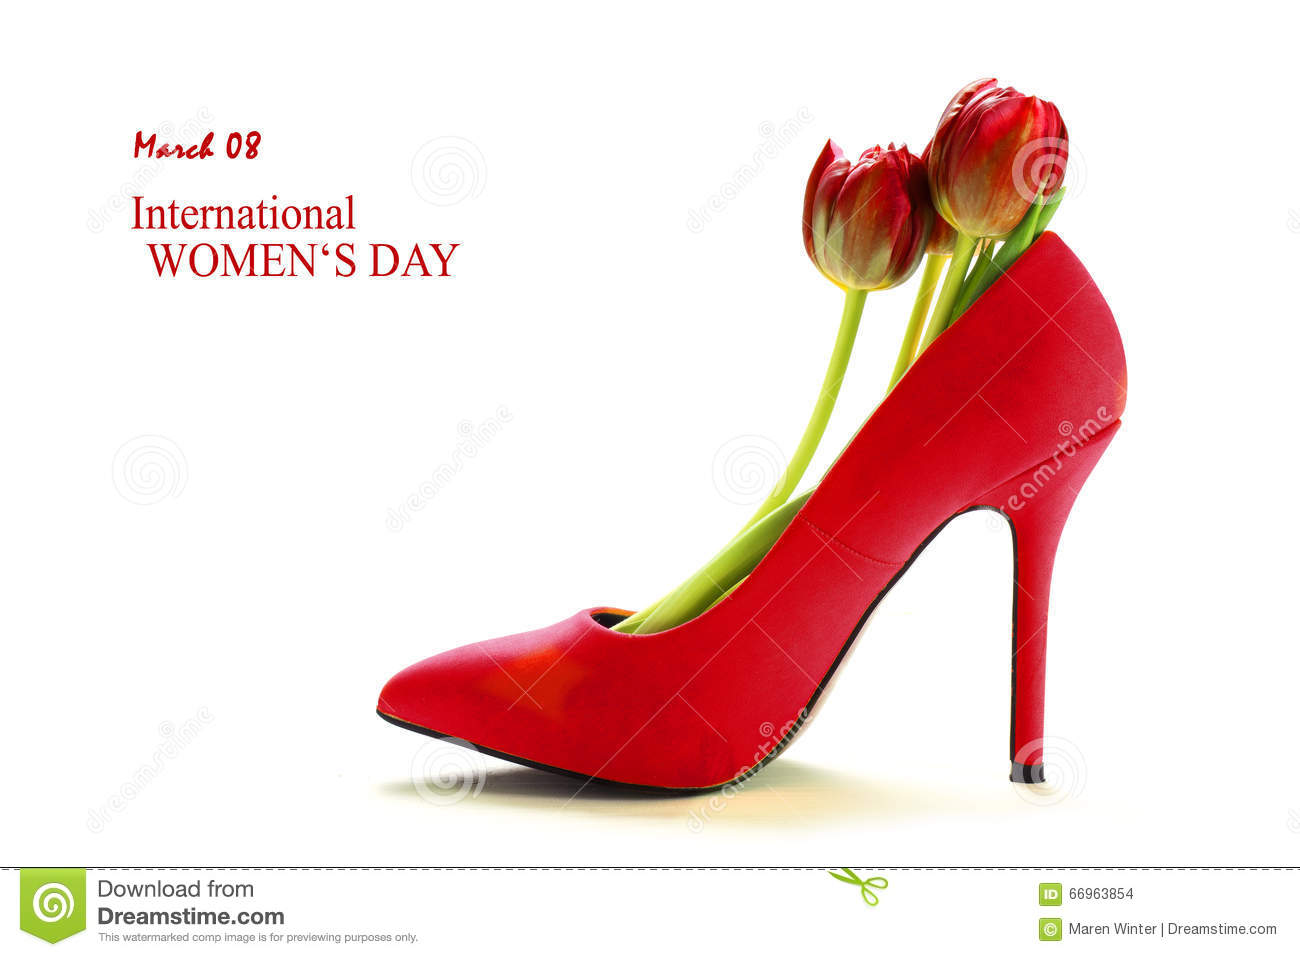 11e837b8bcc Ladies Red High Heel Shoe With Tulips Inside, On White, Stock Photo ...